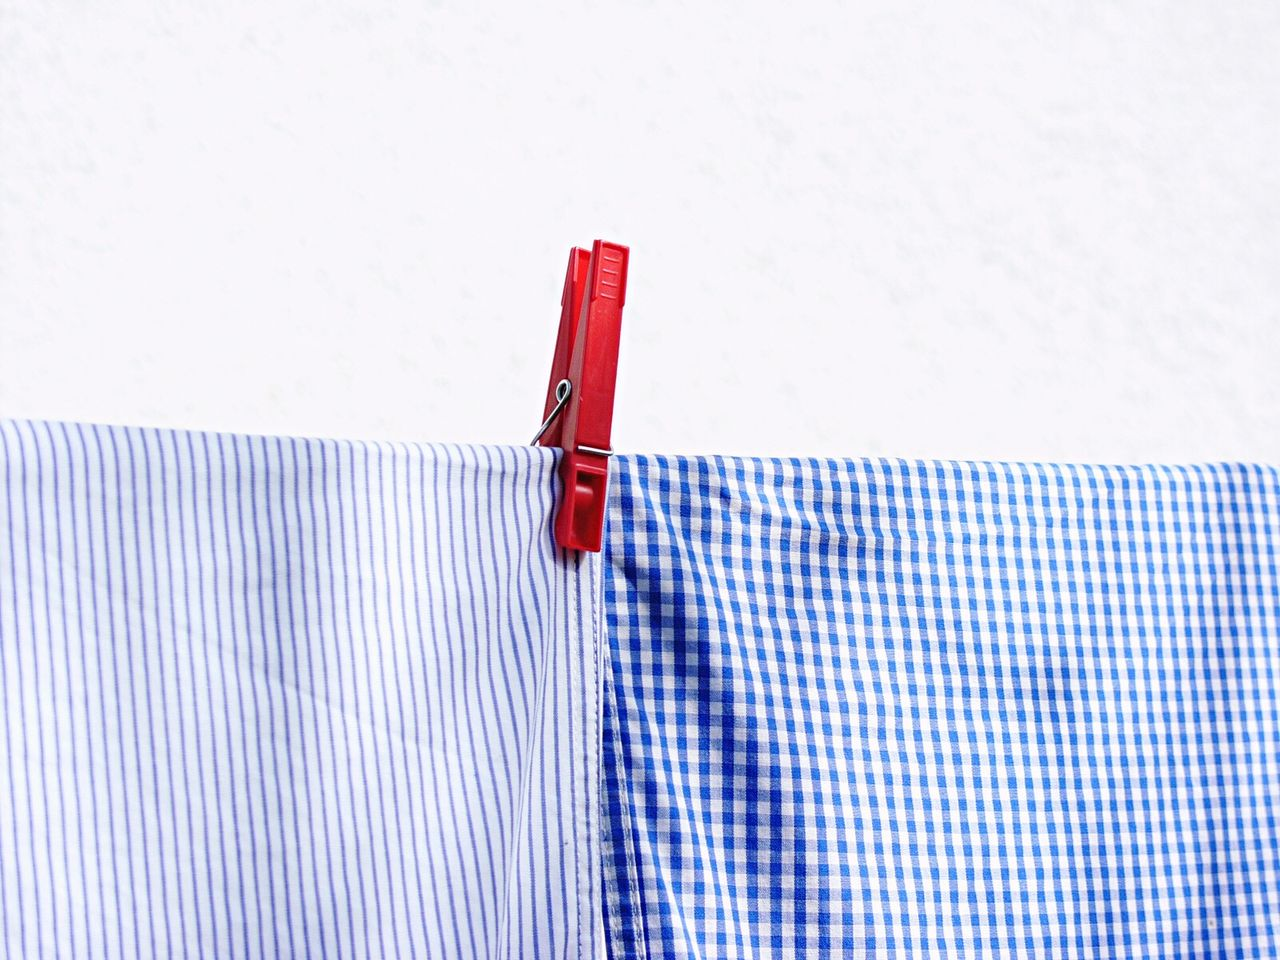 Clothespin on clothesline against white wall